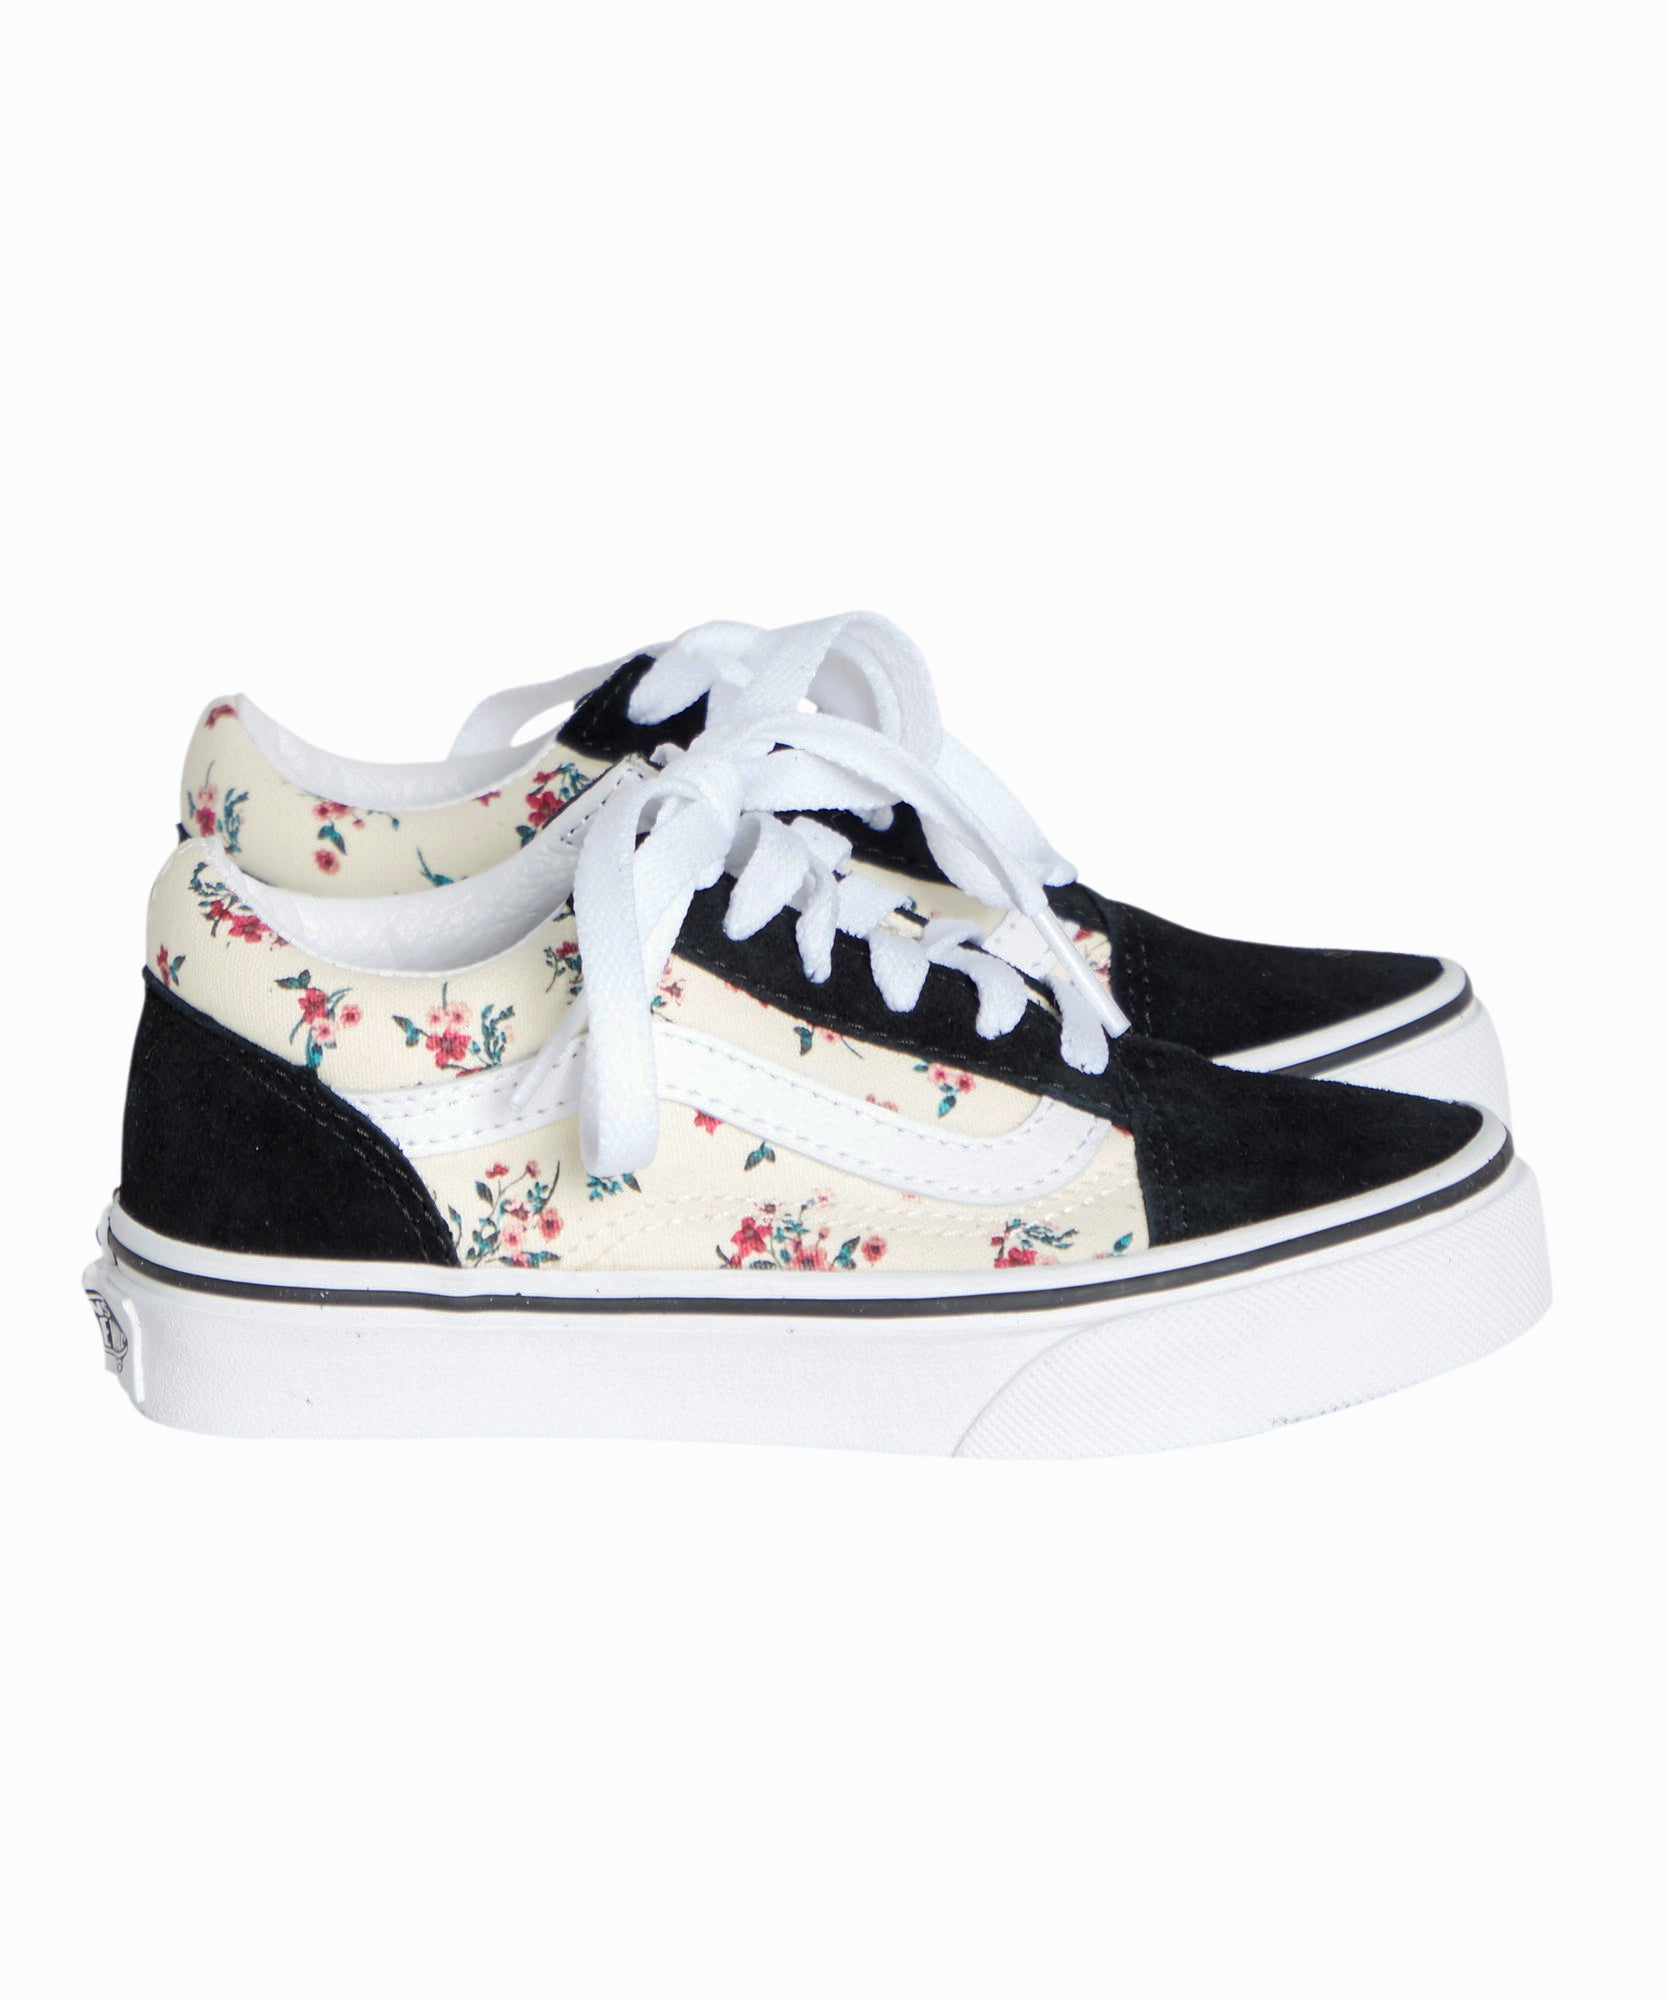 Old Skool Ditsy Floral Sneakers